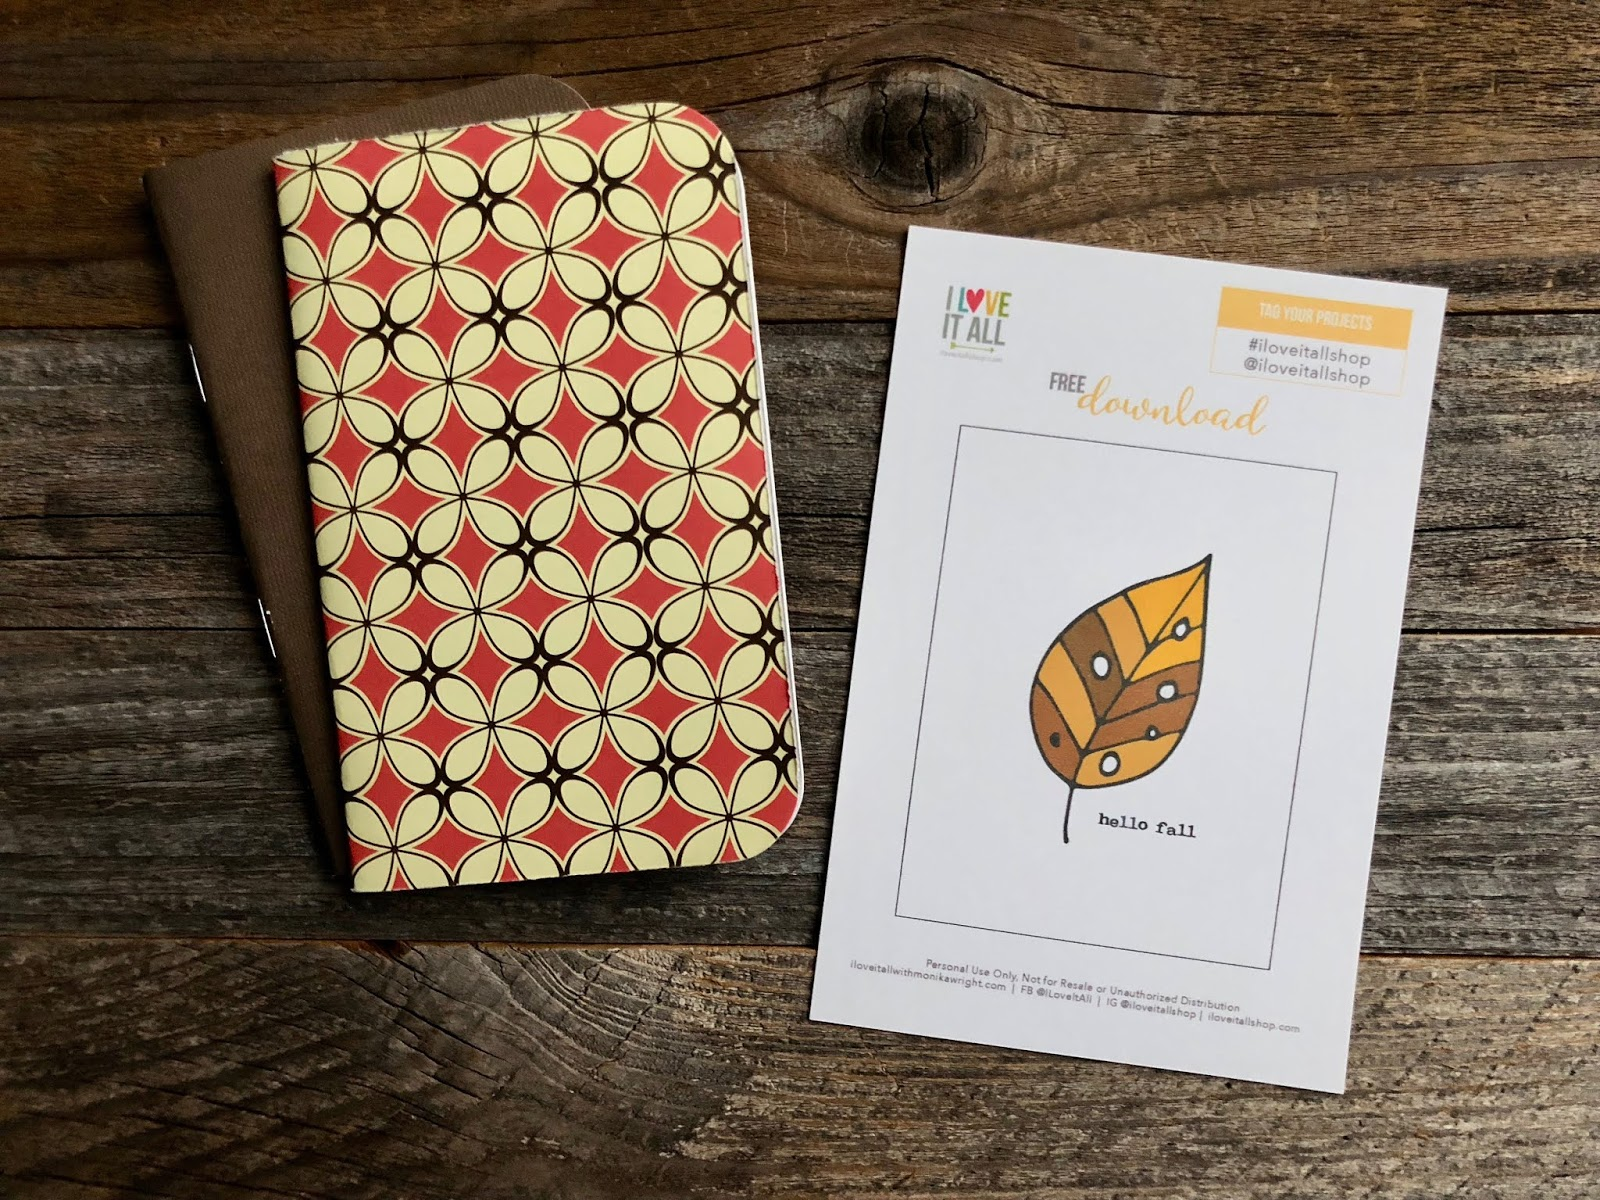 #travelers notebook #Hello Fall #free download #printable #free #Hello Fall Card #Midori #planner supplies #Fall #Autumn